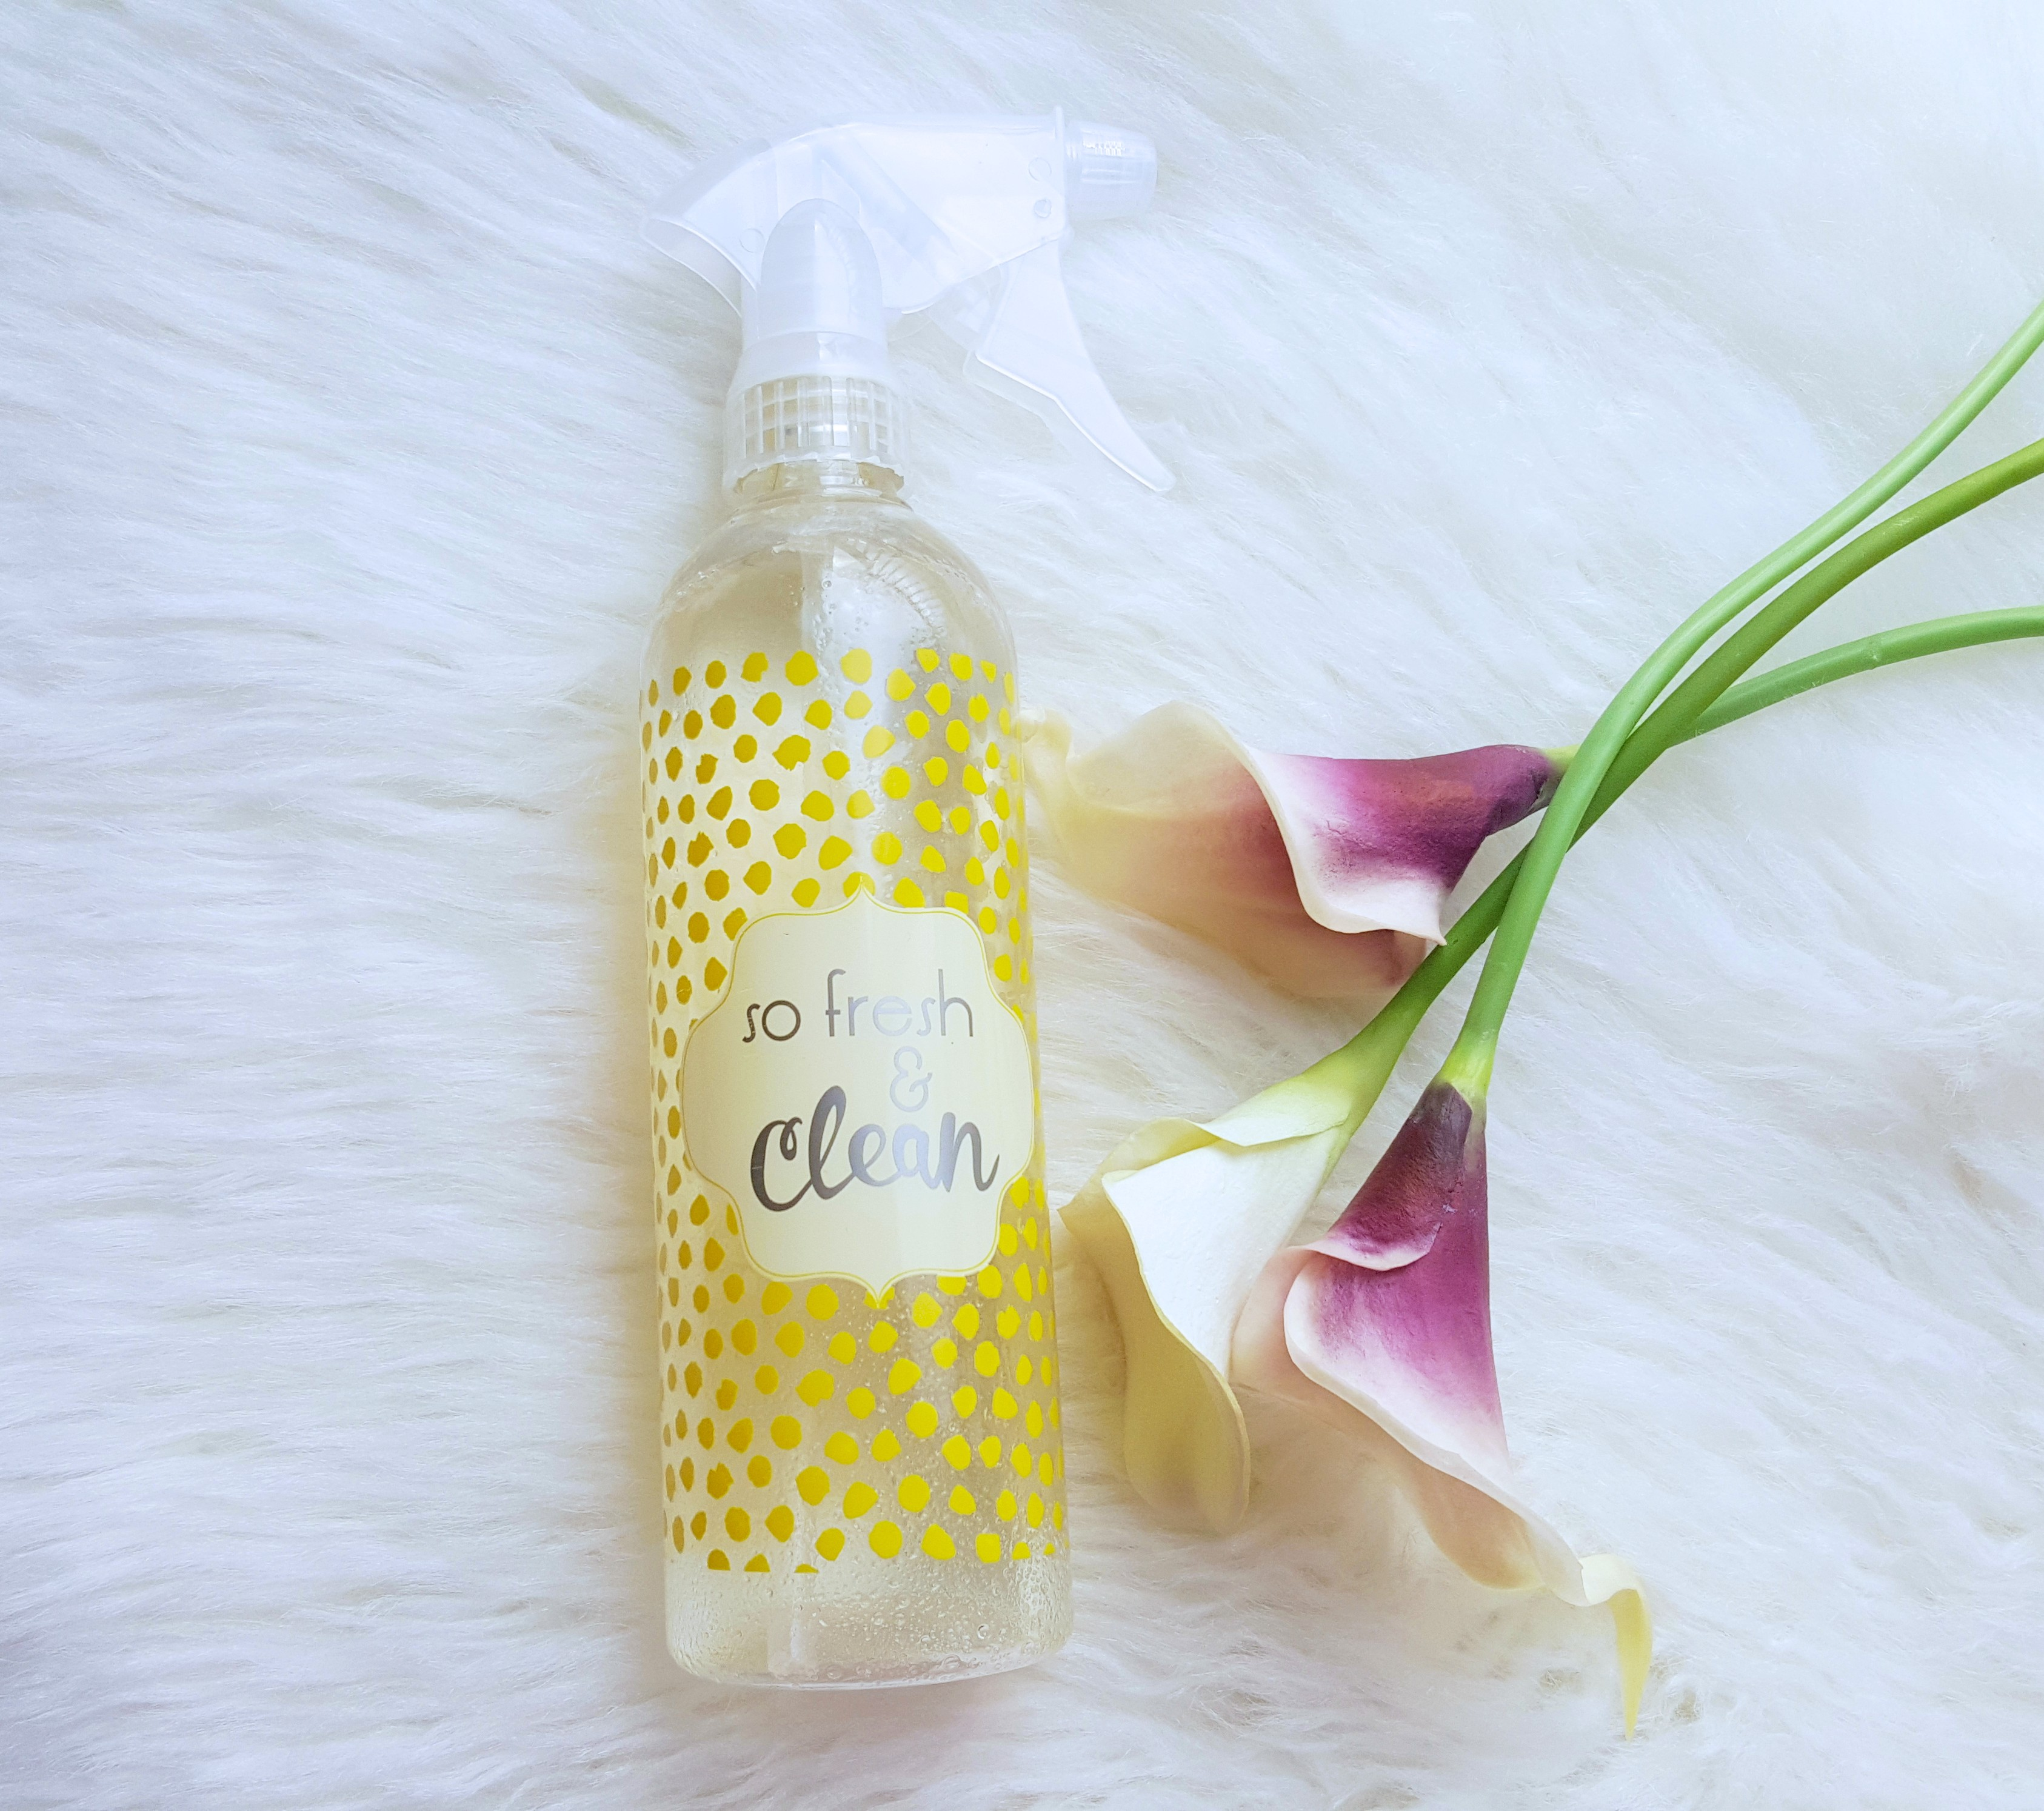 Diy all natural cleaning spray